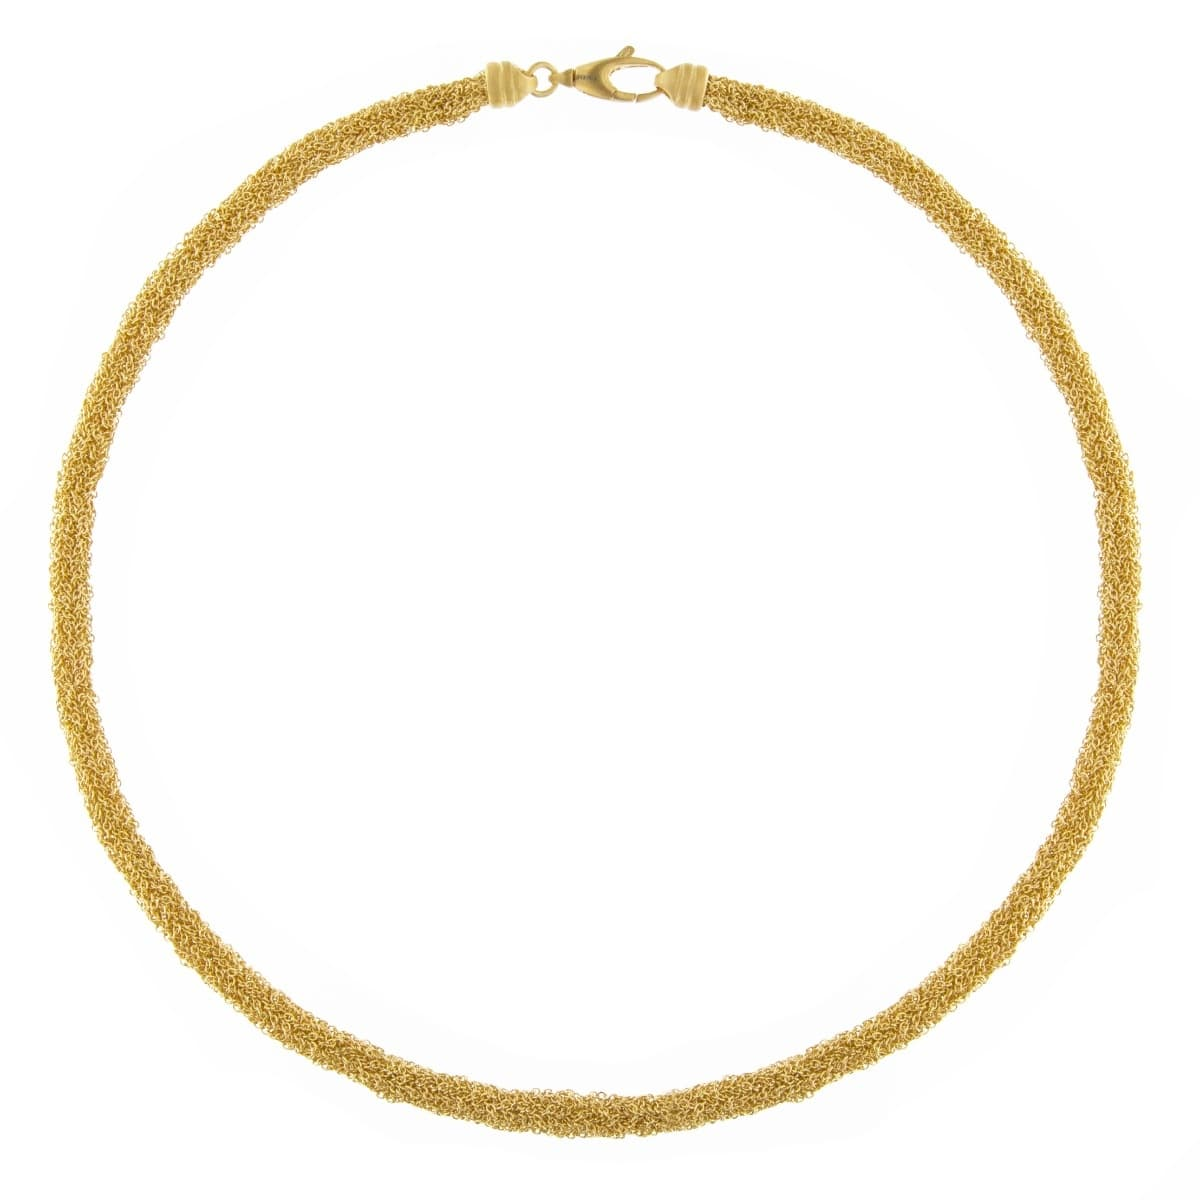 Gold Plated Sterling Silver Woven Chain Necklace